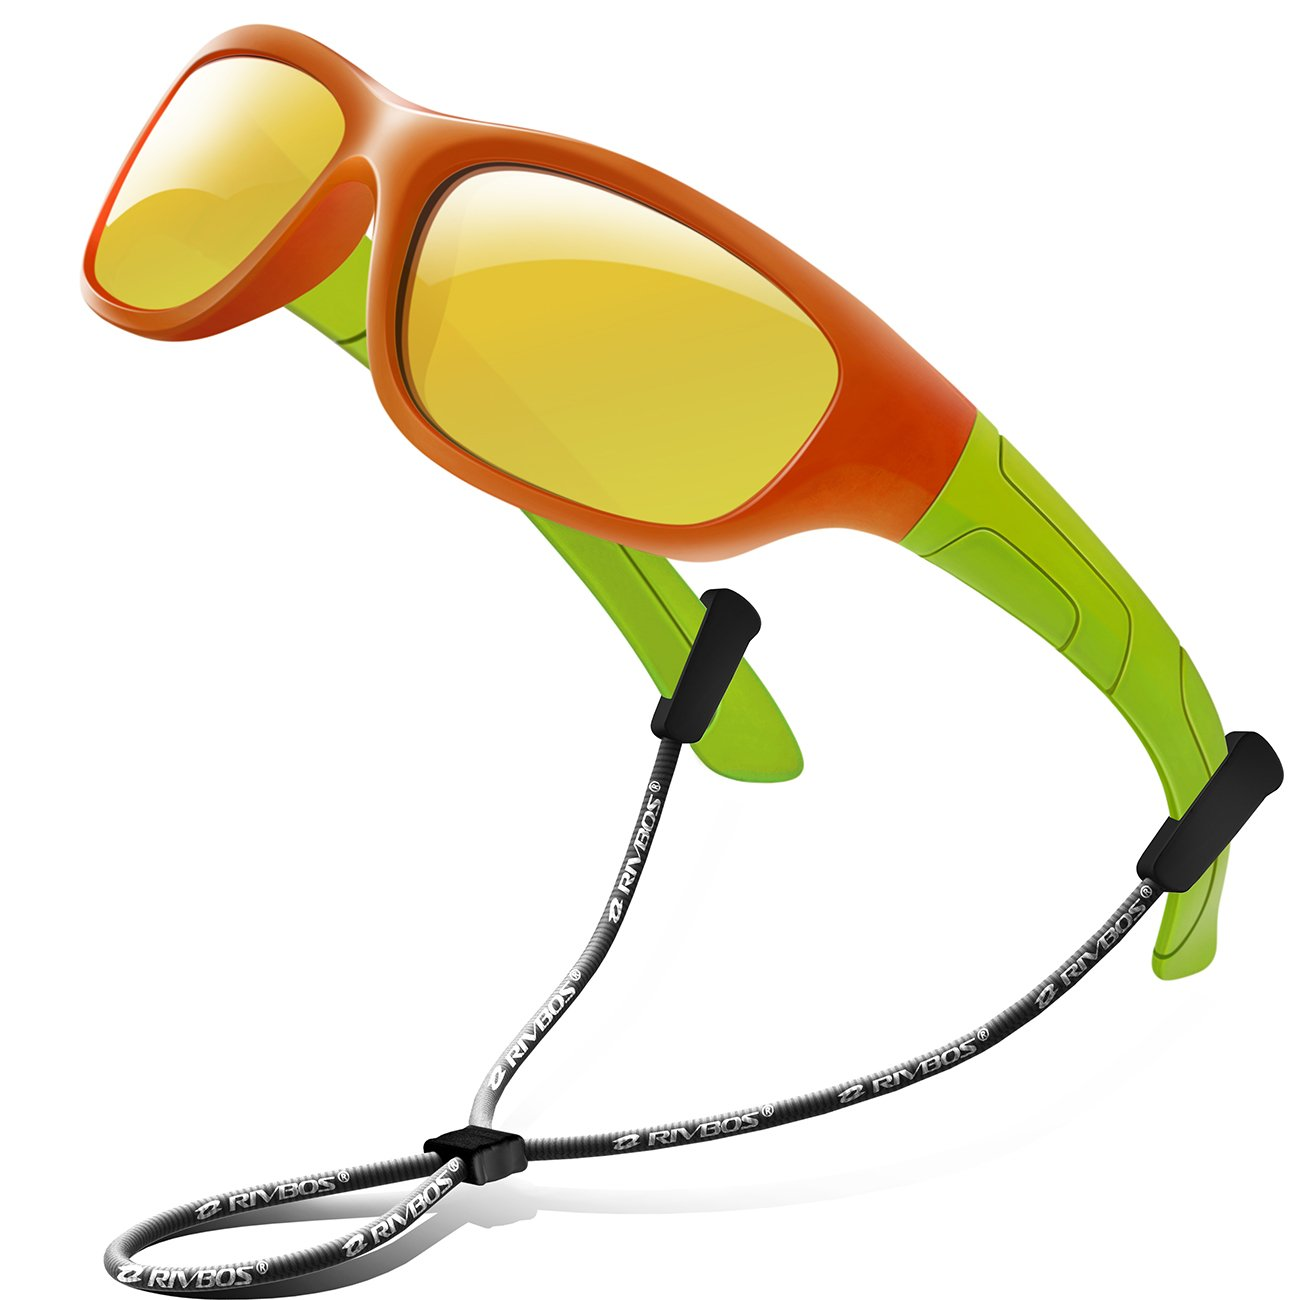 4963191c6f7 Amazon.com  RIVBOS Rubber Kids Polarized Sunglasses With Strap Glasses  Shades for Boys Girls Baby and Children Age 3-10 RBK025 (Orange Mirror  Lens)  ...